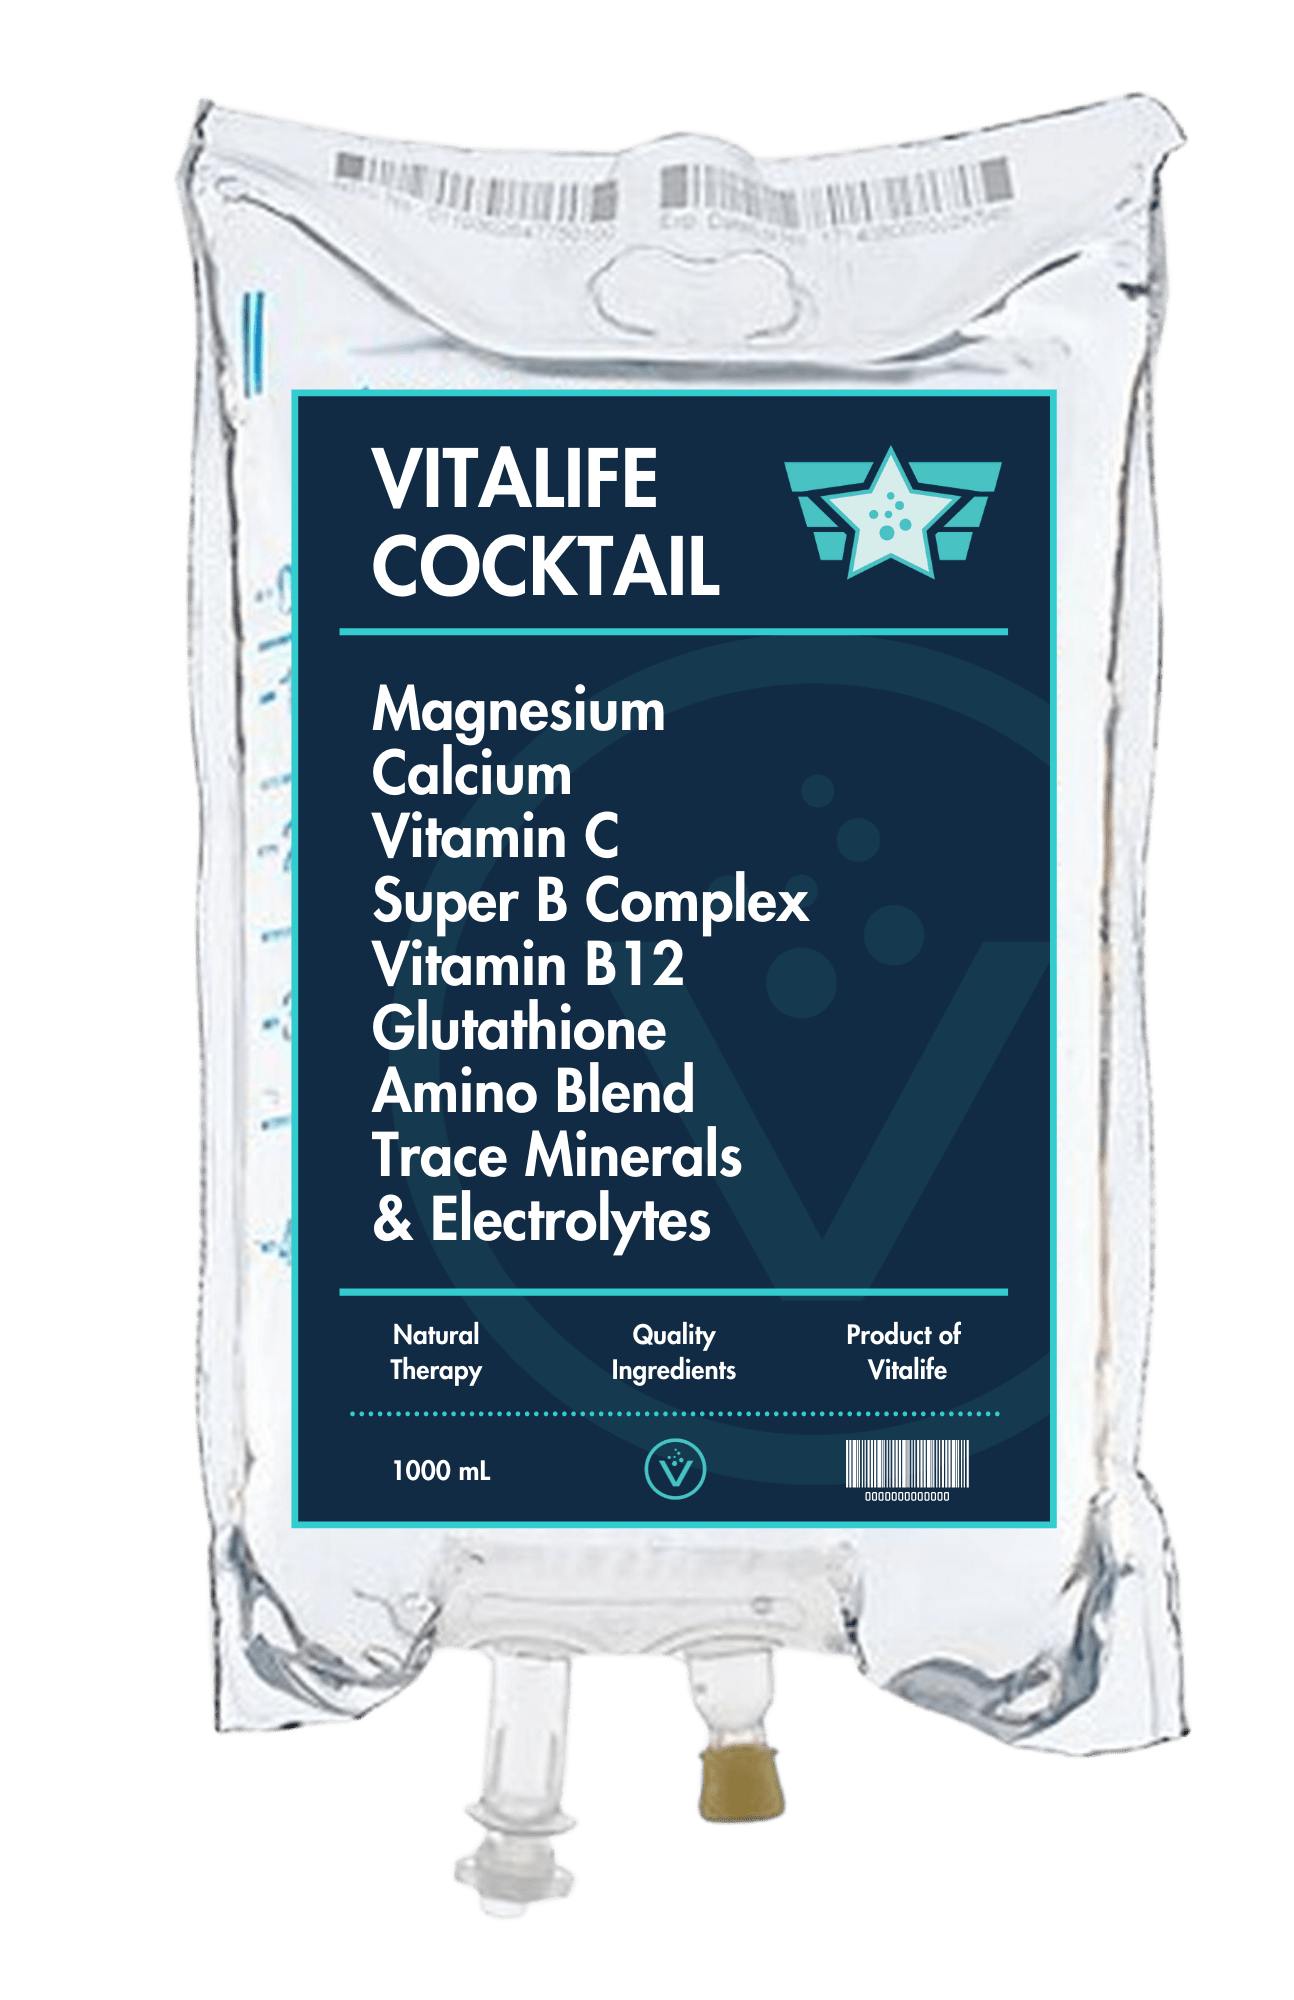 Vitalife Cocktail IV Therapy